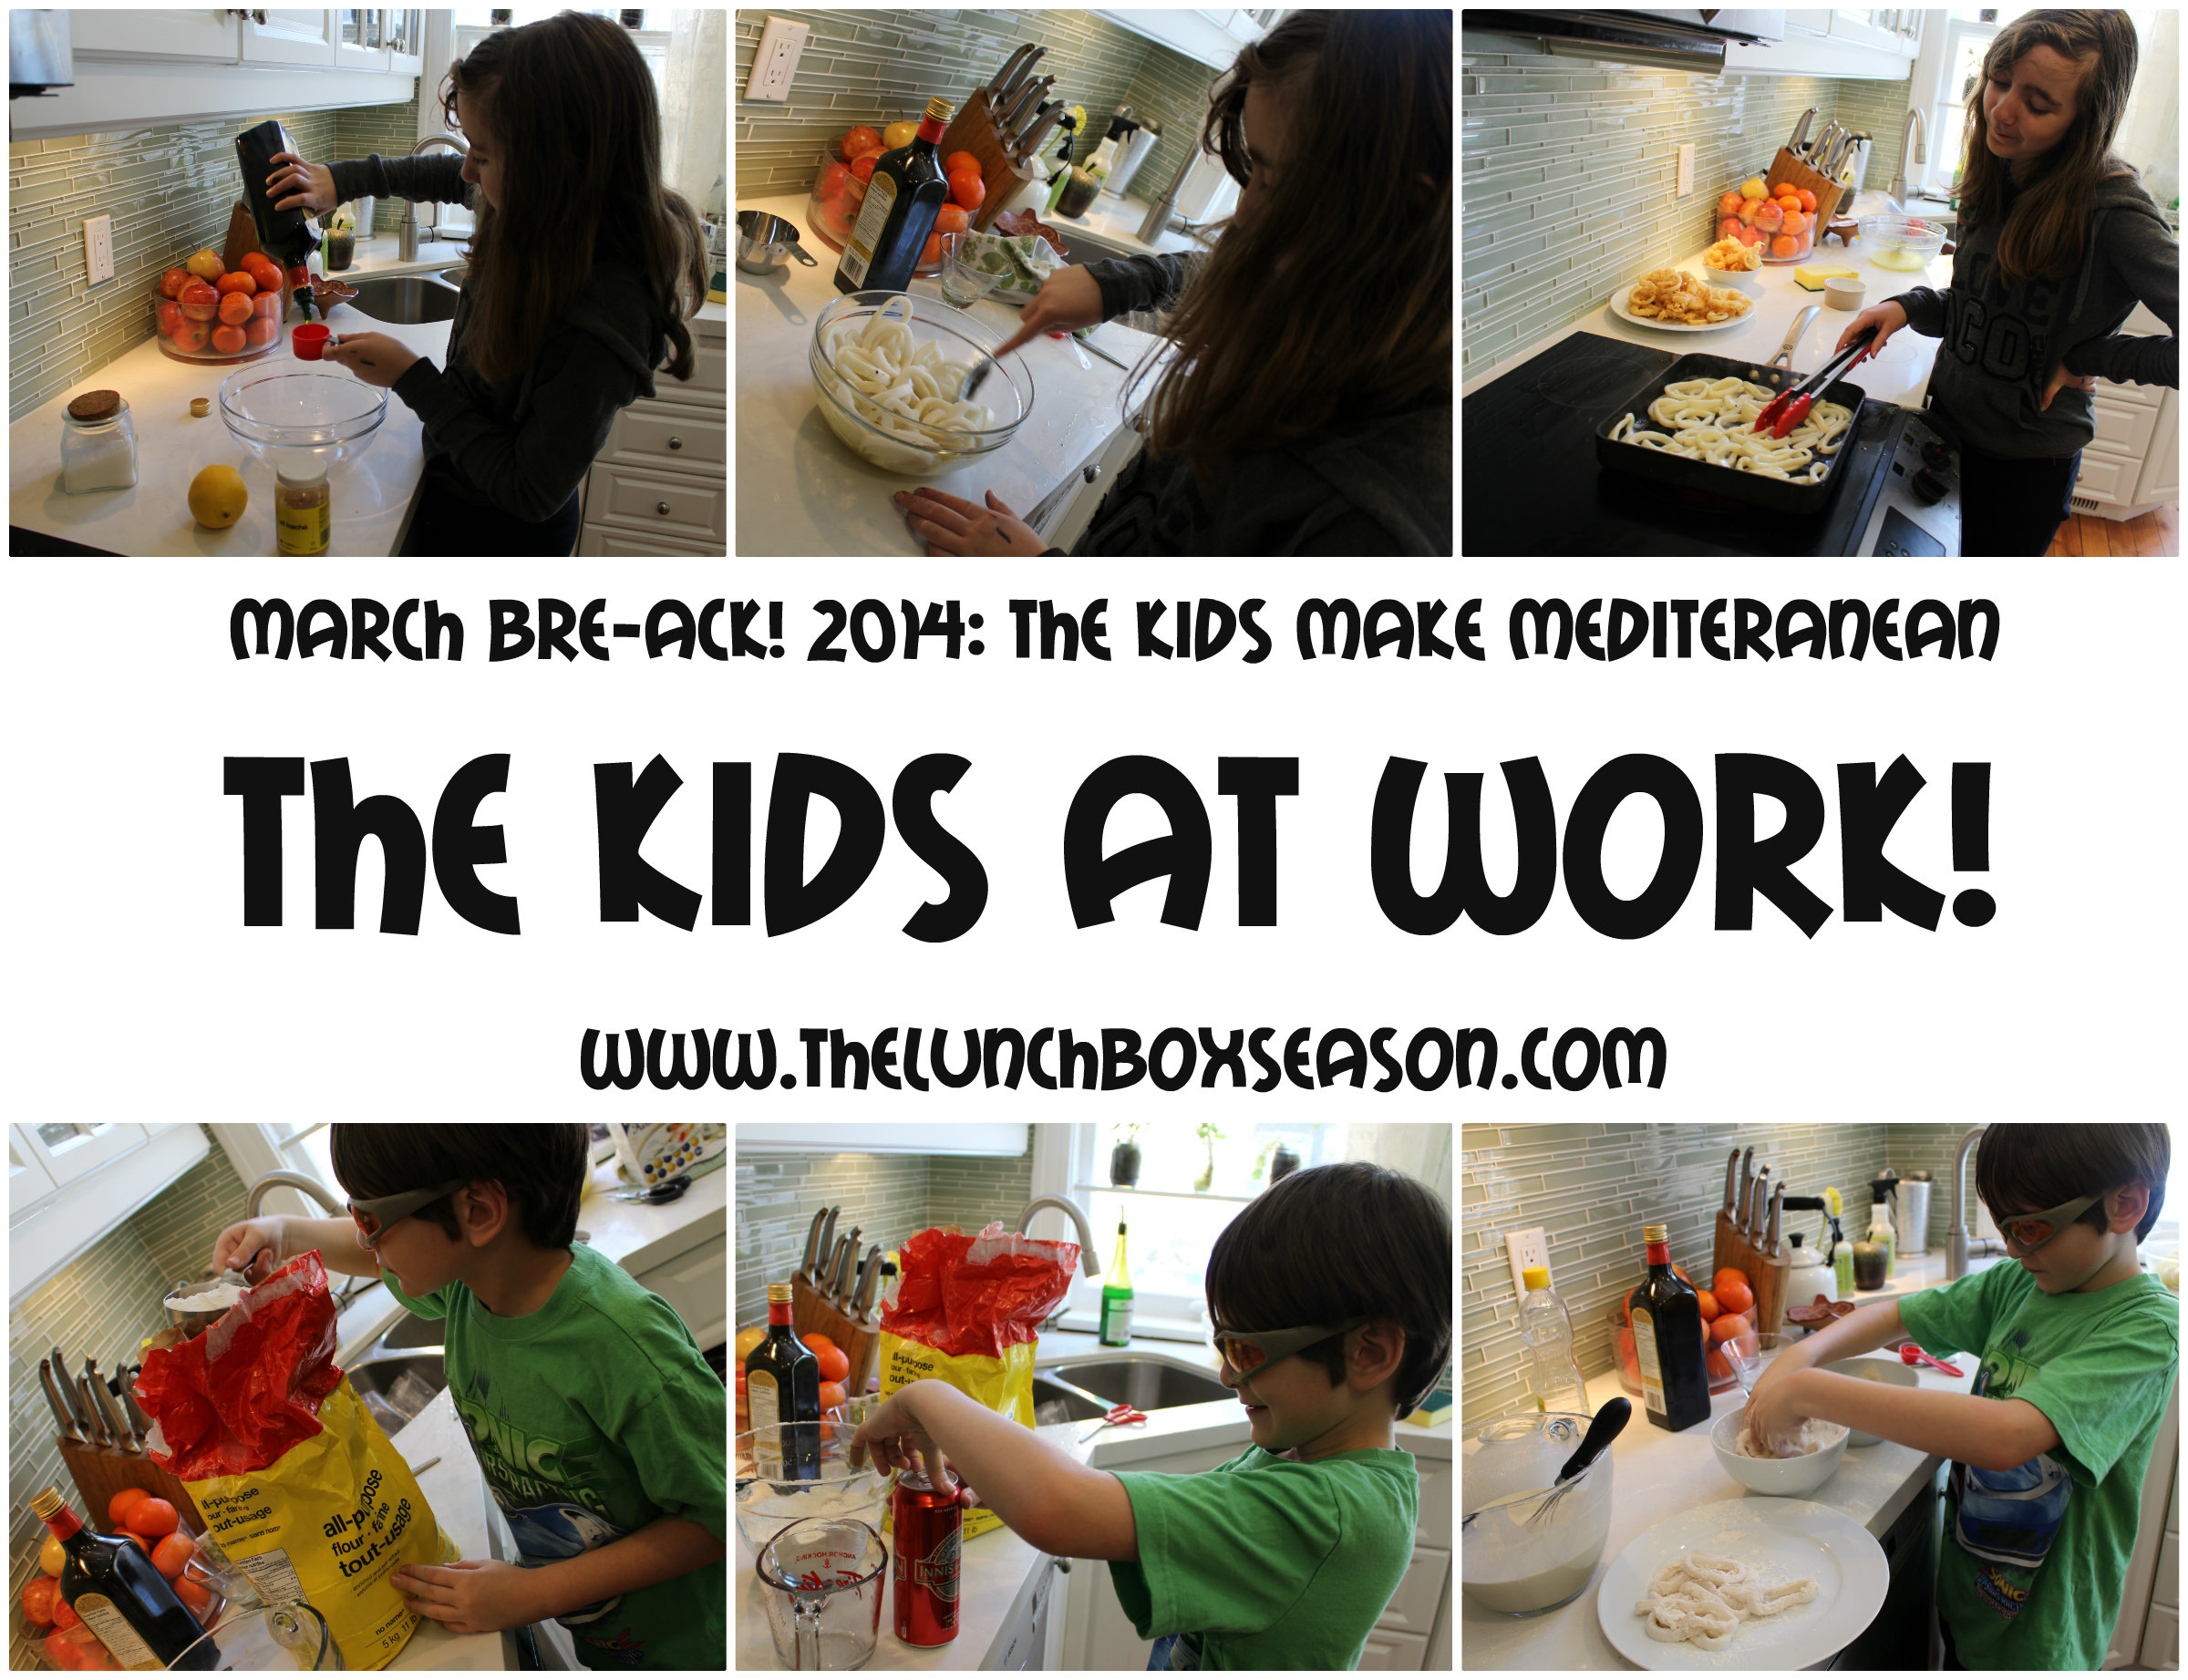 The kids at work!